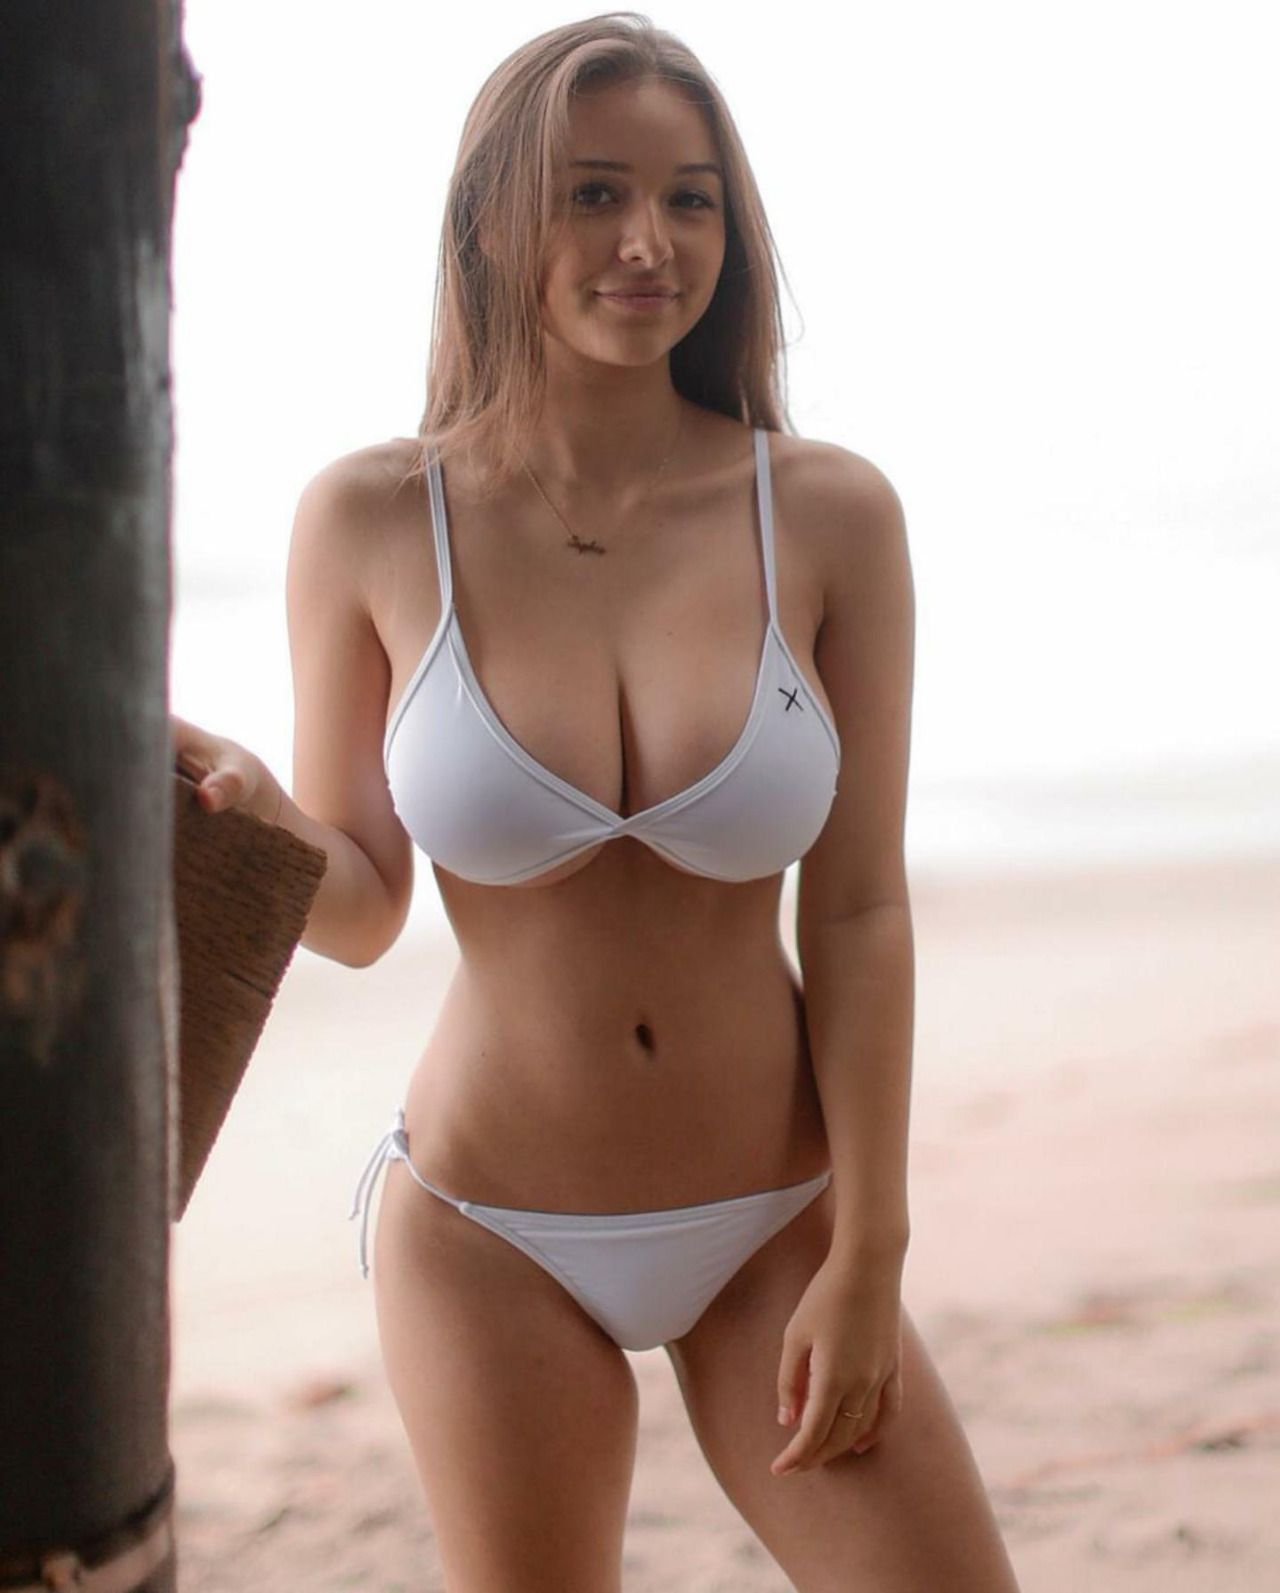 Big breasted swimsuit models